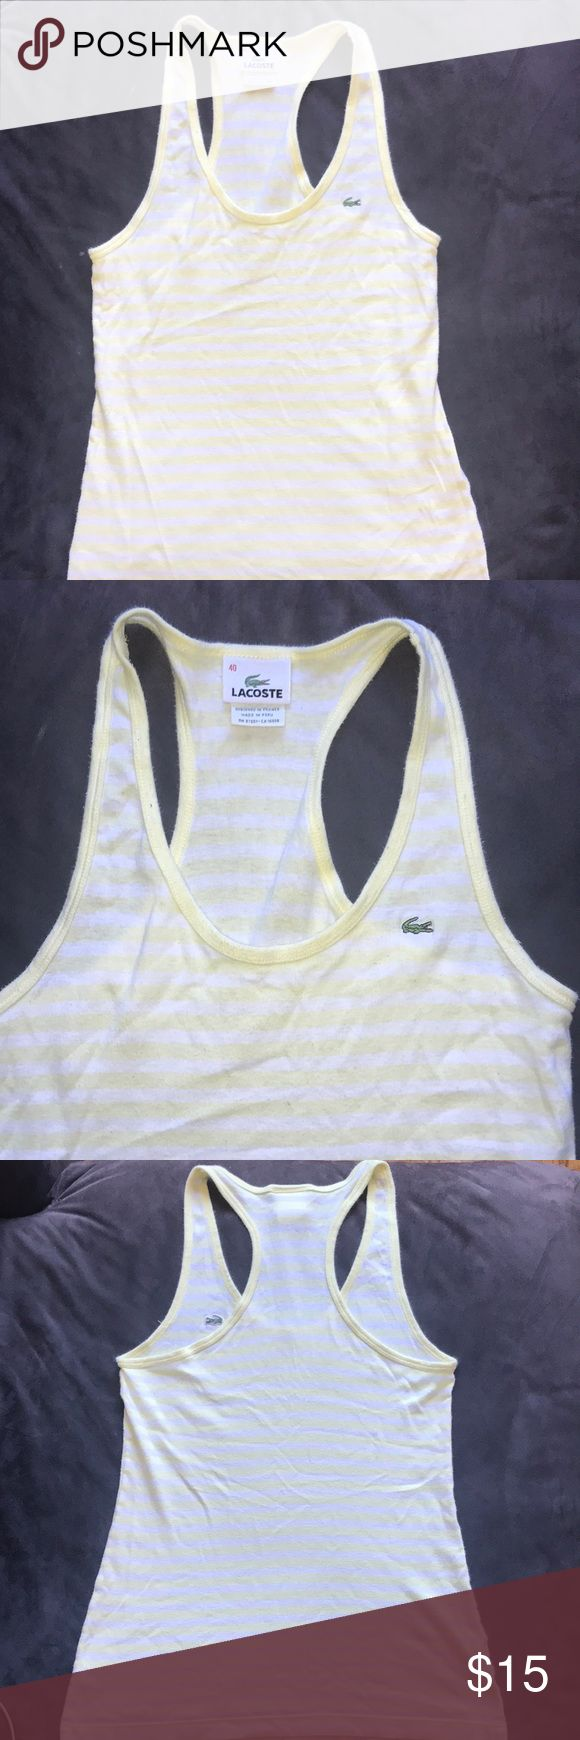 Lacoste white and yellow strip tank top Lacoste white and yellow strip tank top Lacoste Tops Tank Tops